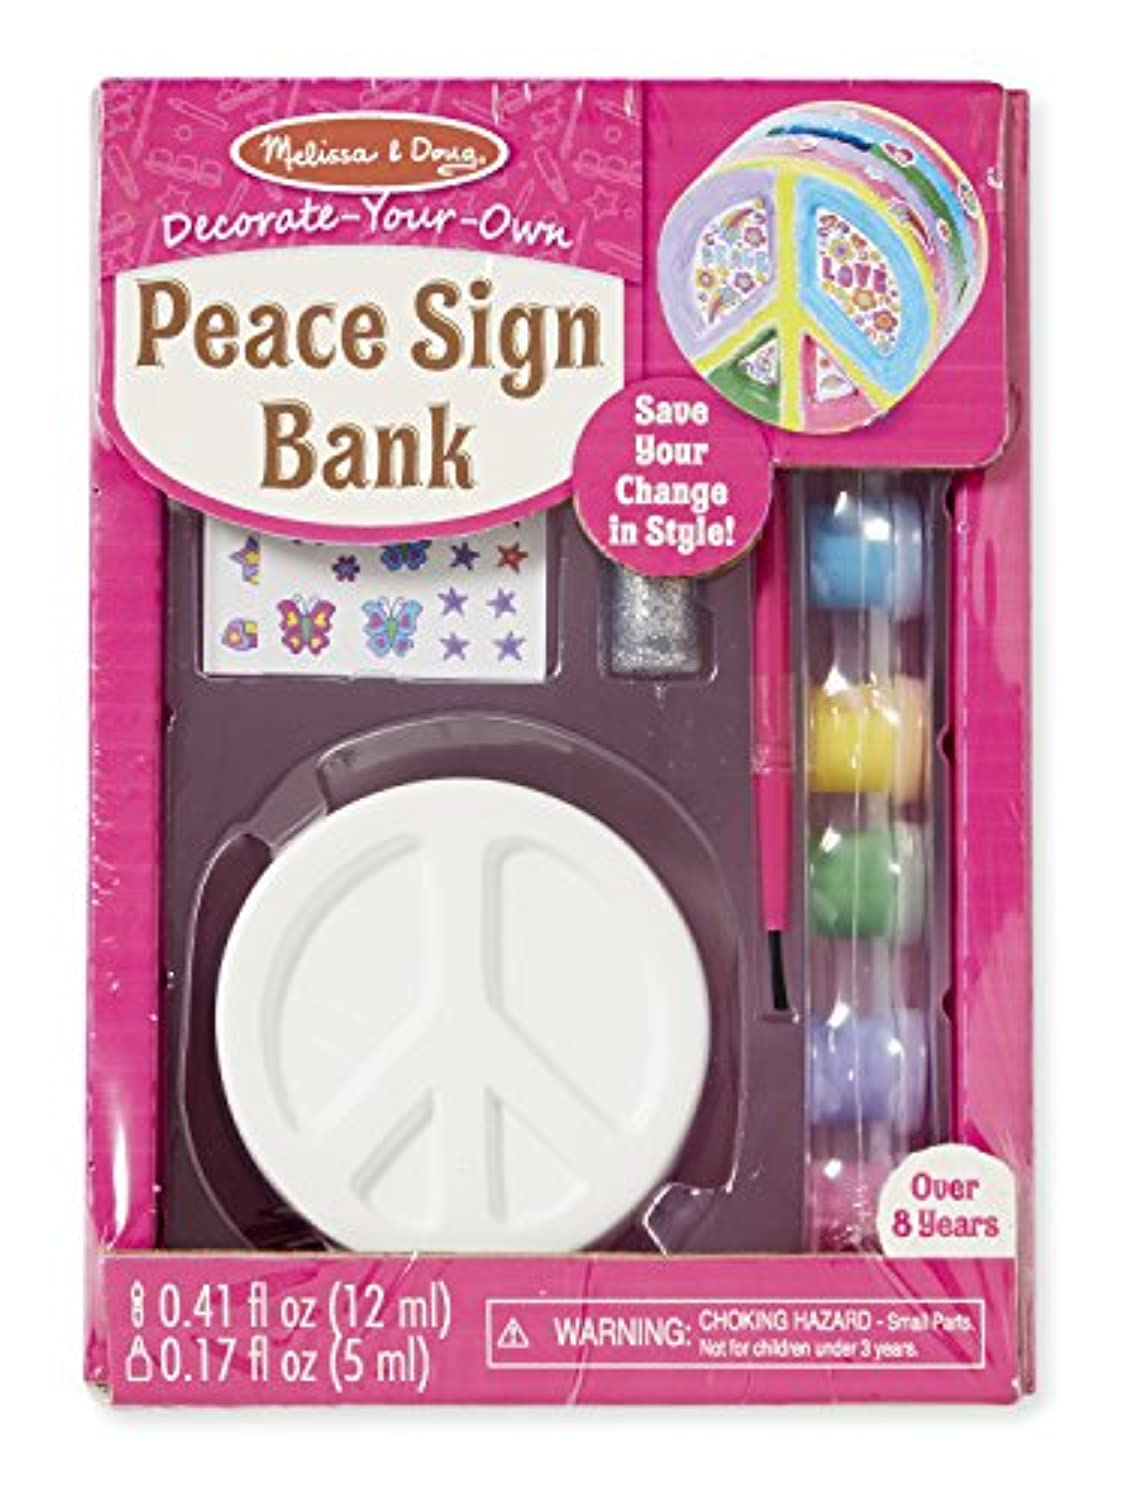 Melissa & Doug decorate-your-own Peace Sign Bankクラフトキット